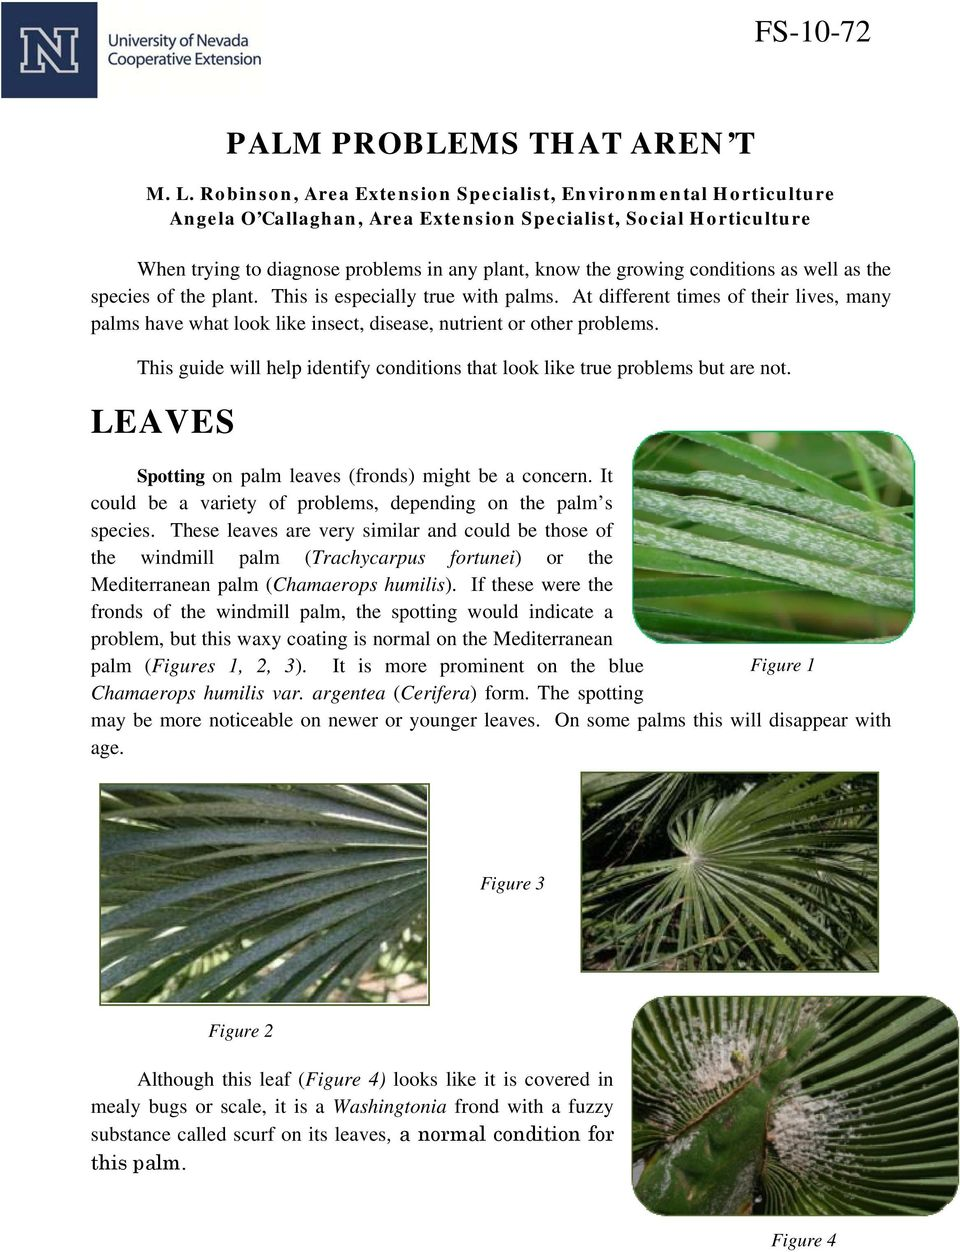 conditions as well as the species of the plant. This is especially true with palms. At different times of their lives, many palms have what look like insect, disease, nutrient or other problems.